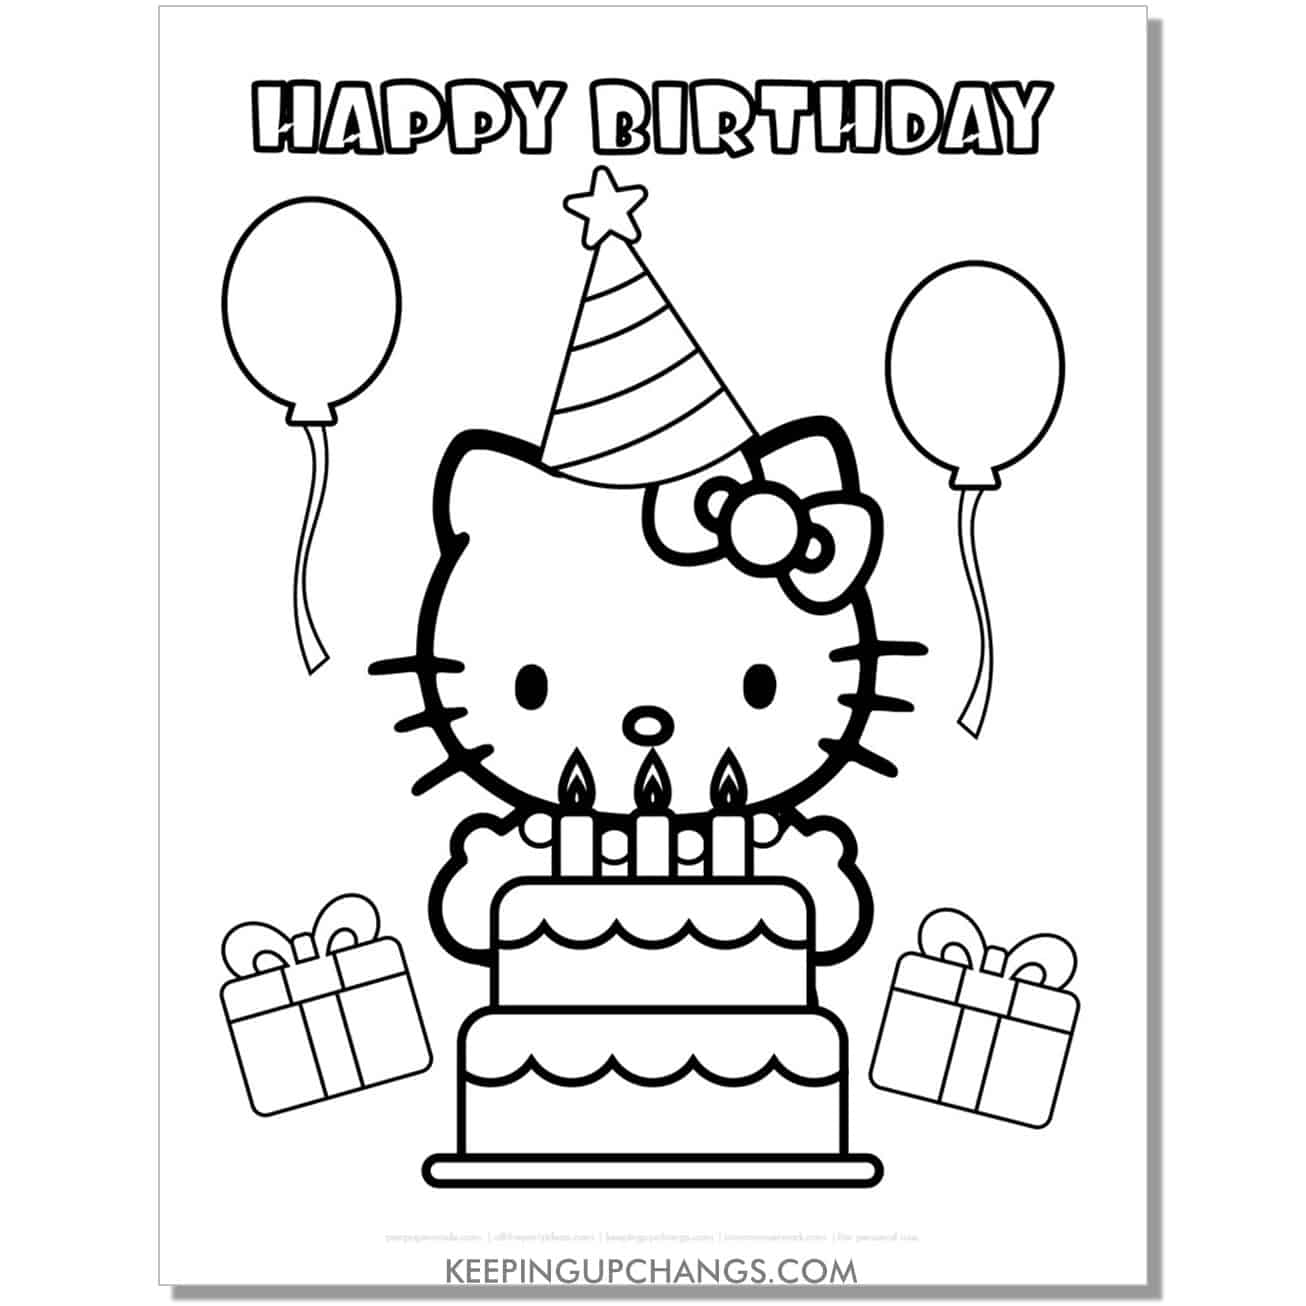 happy birthday with balloon, cake, presents hello kitty coloring page.